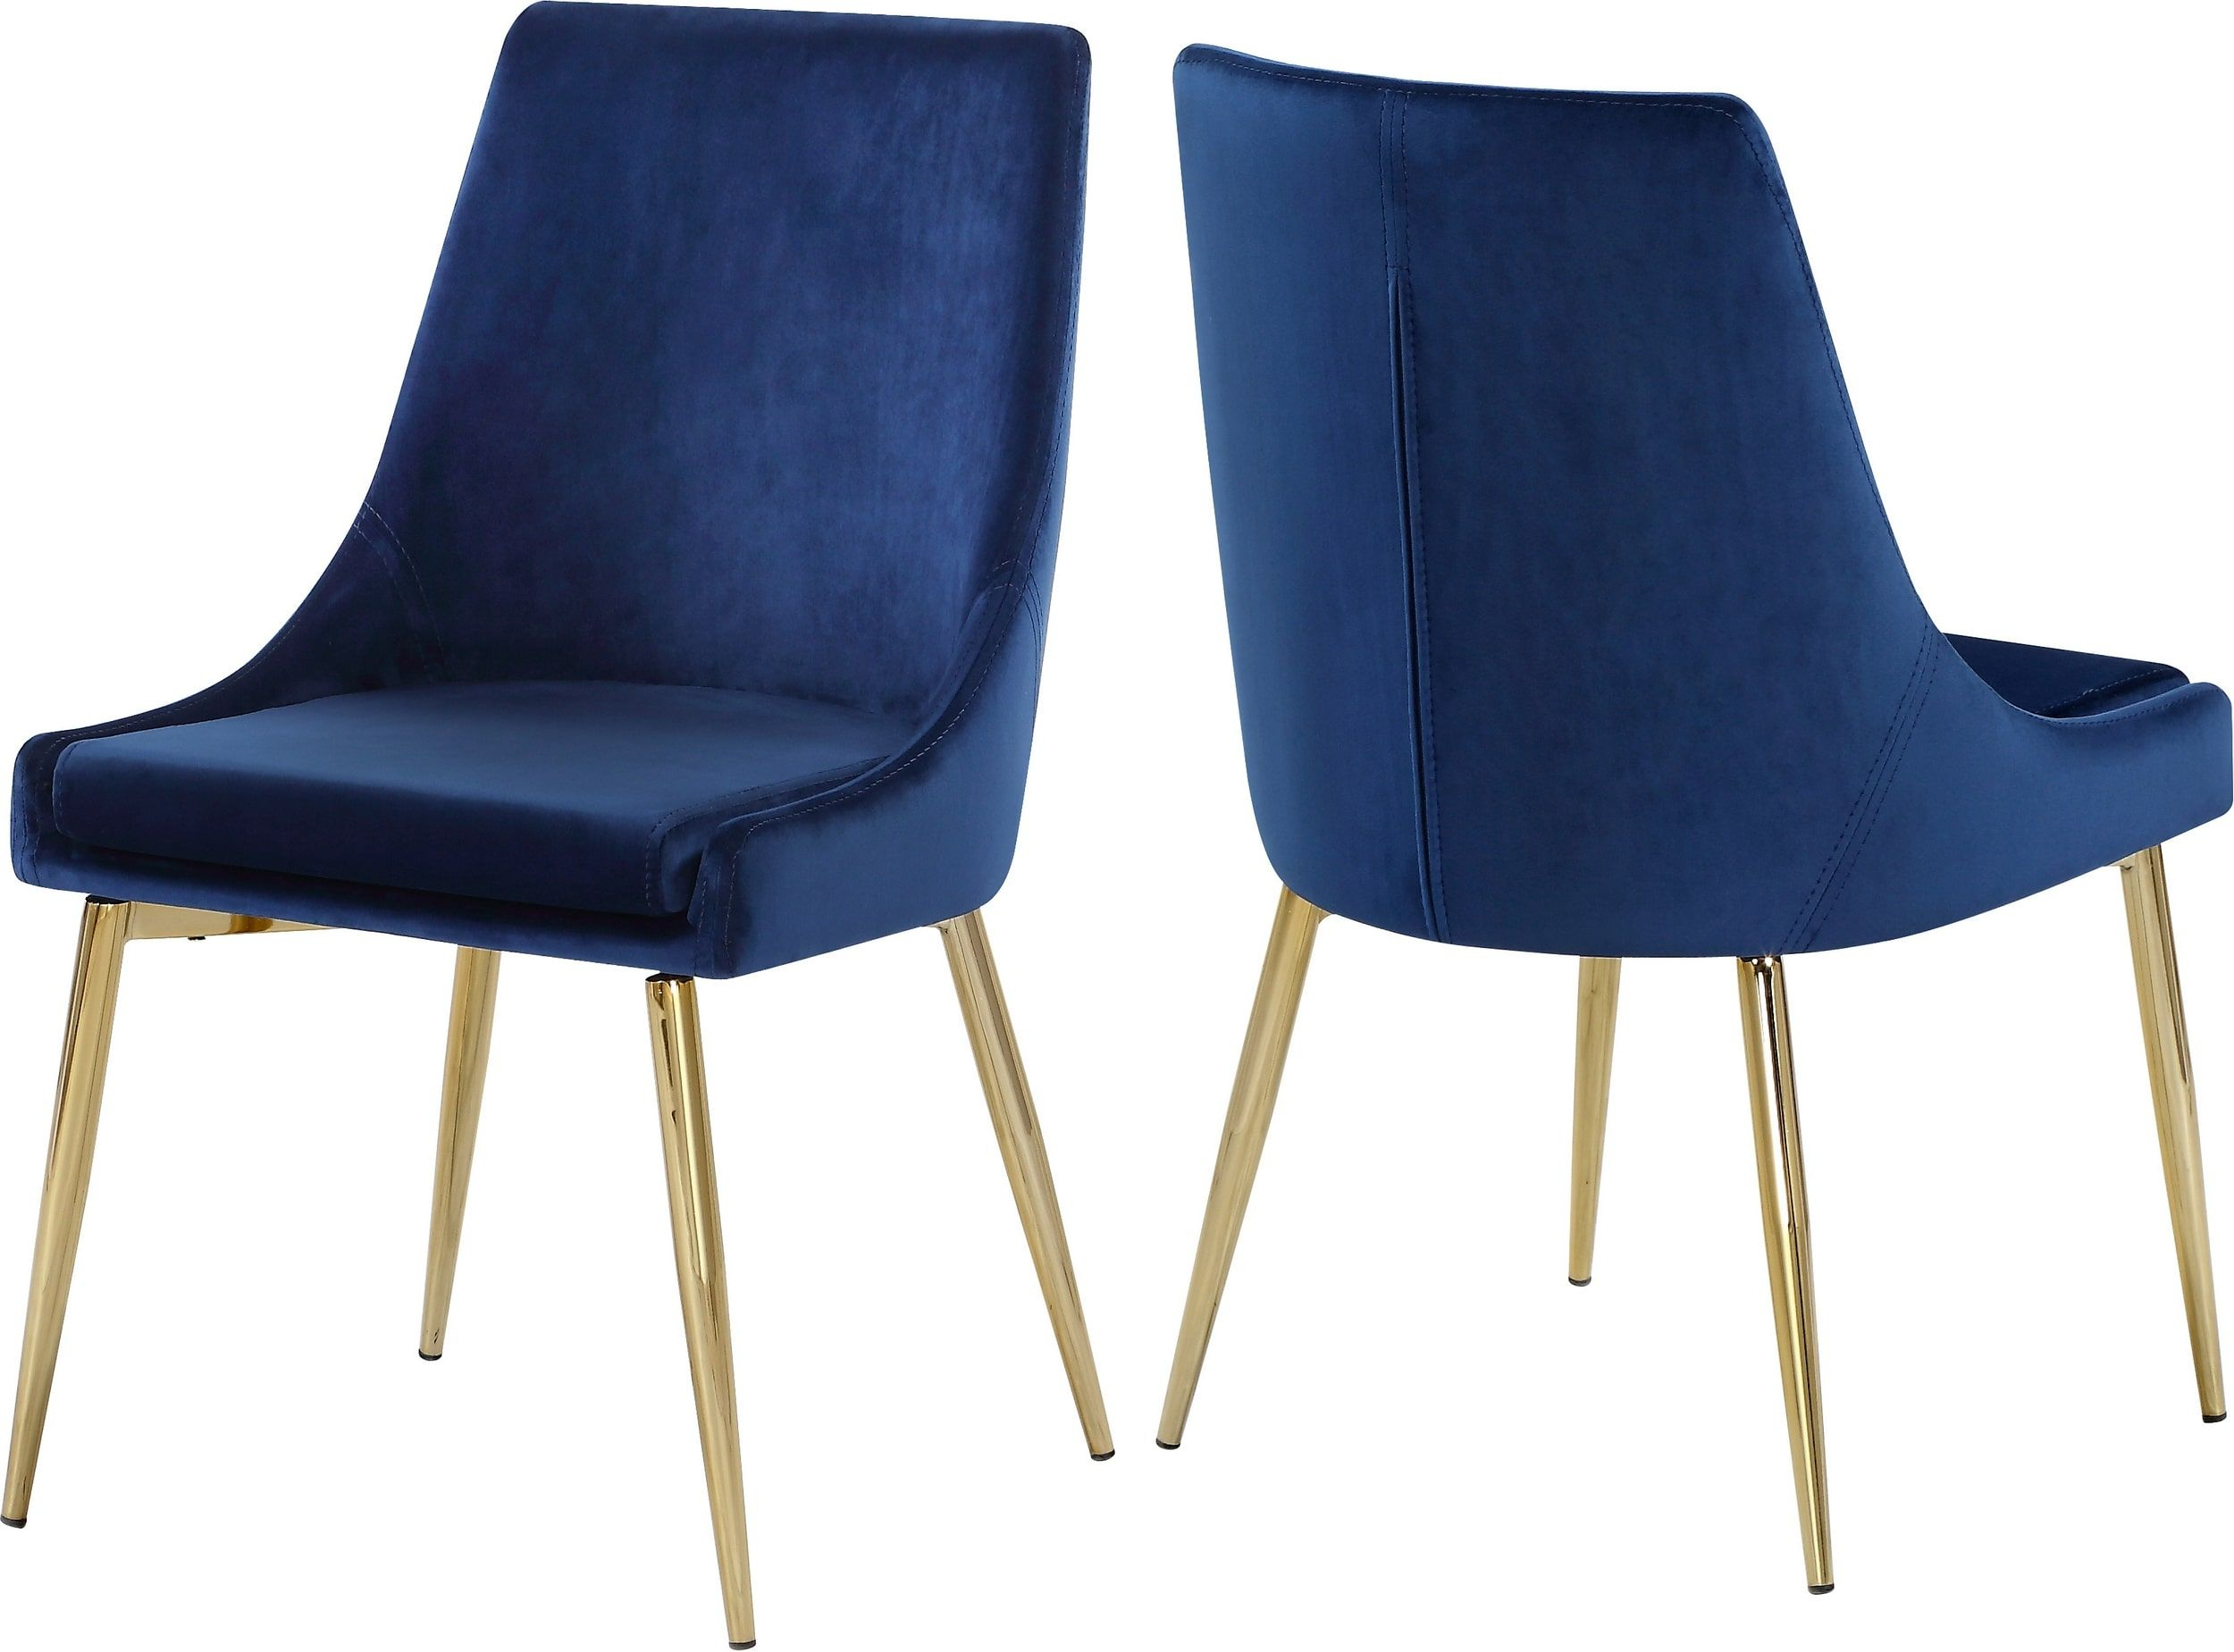 Karina Navy Velvet Dining Chair With Gold Base – Set Of 2 With Ames Arm Sofa Chairs By Nate Berkus And Jeremiah Brent (View 20 of 25)